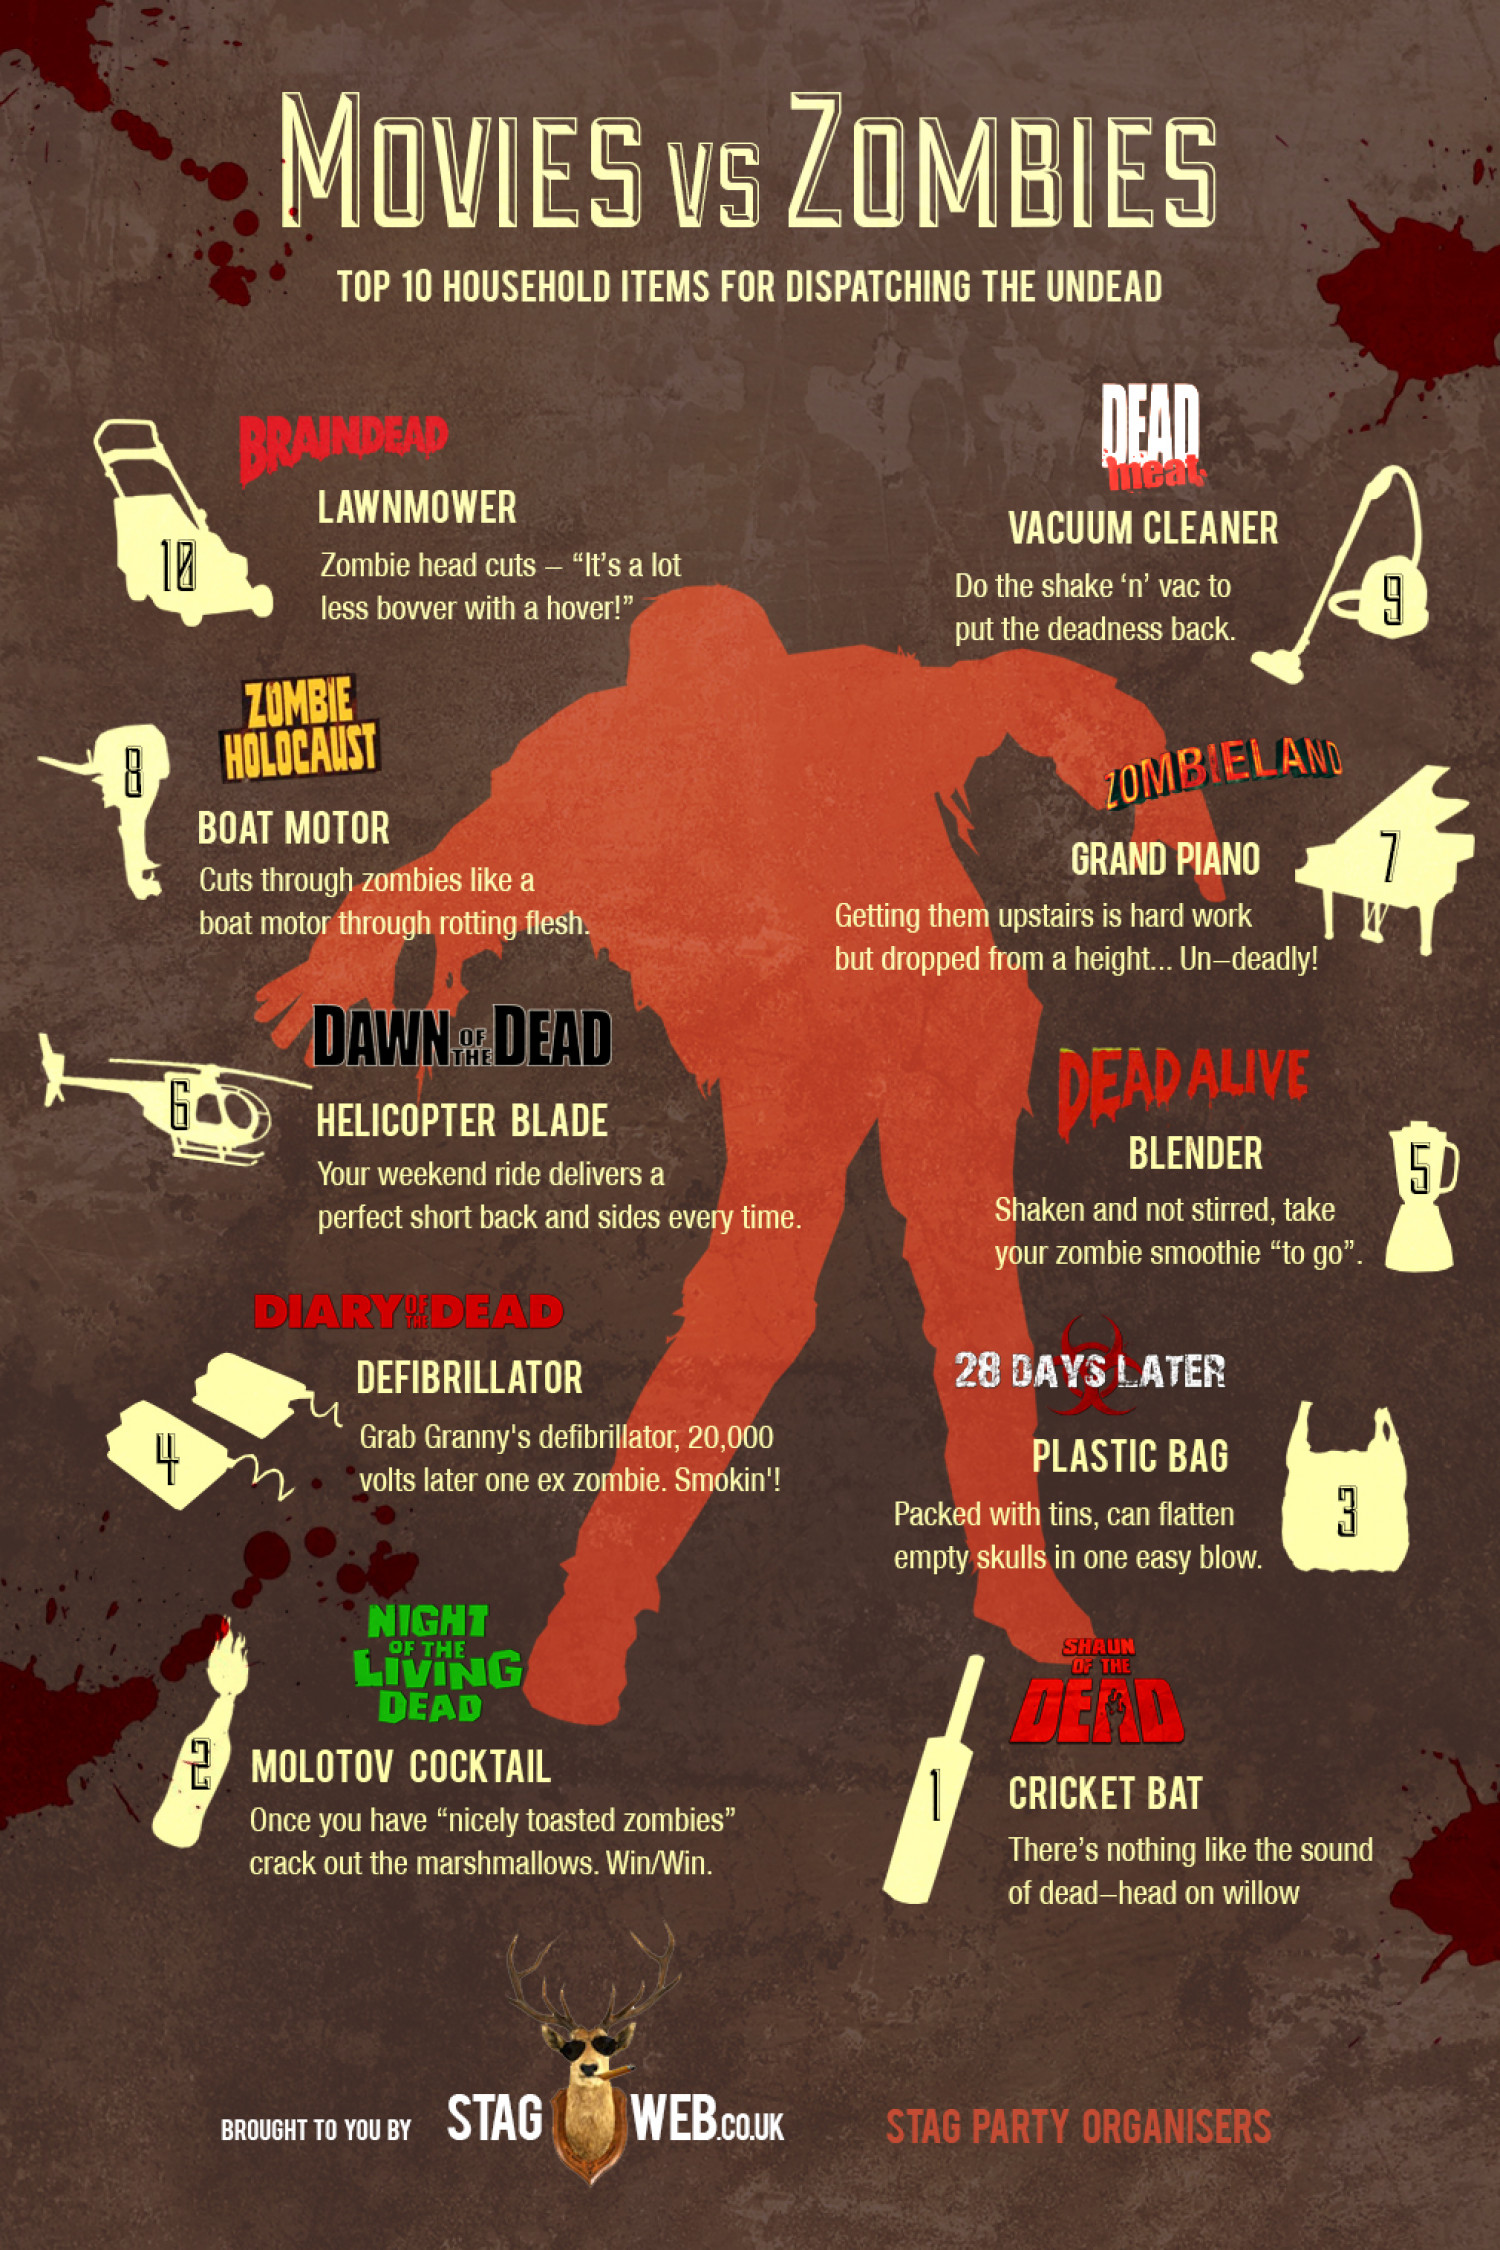 Movies vs Zombies Infographic